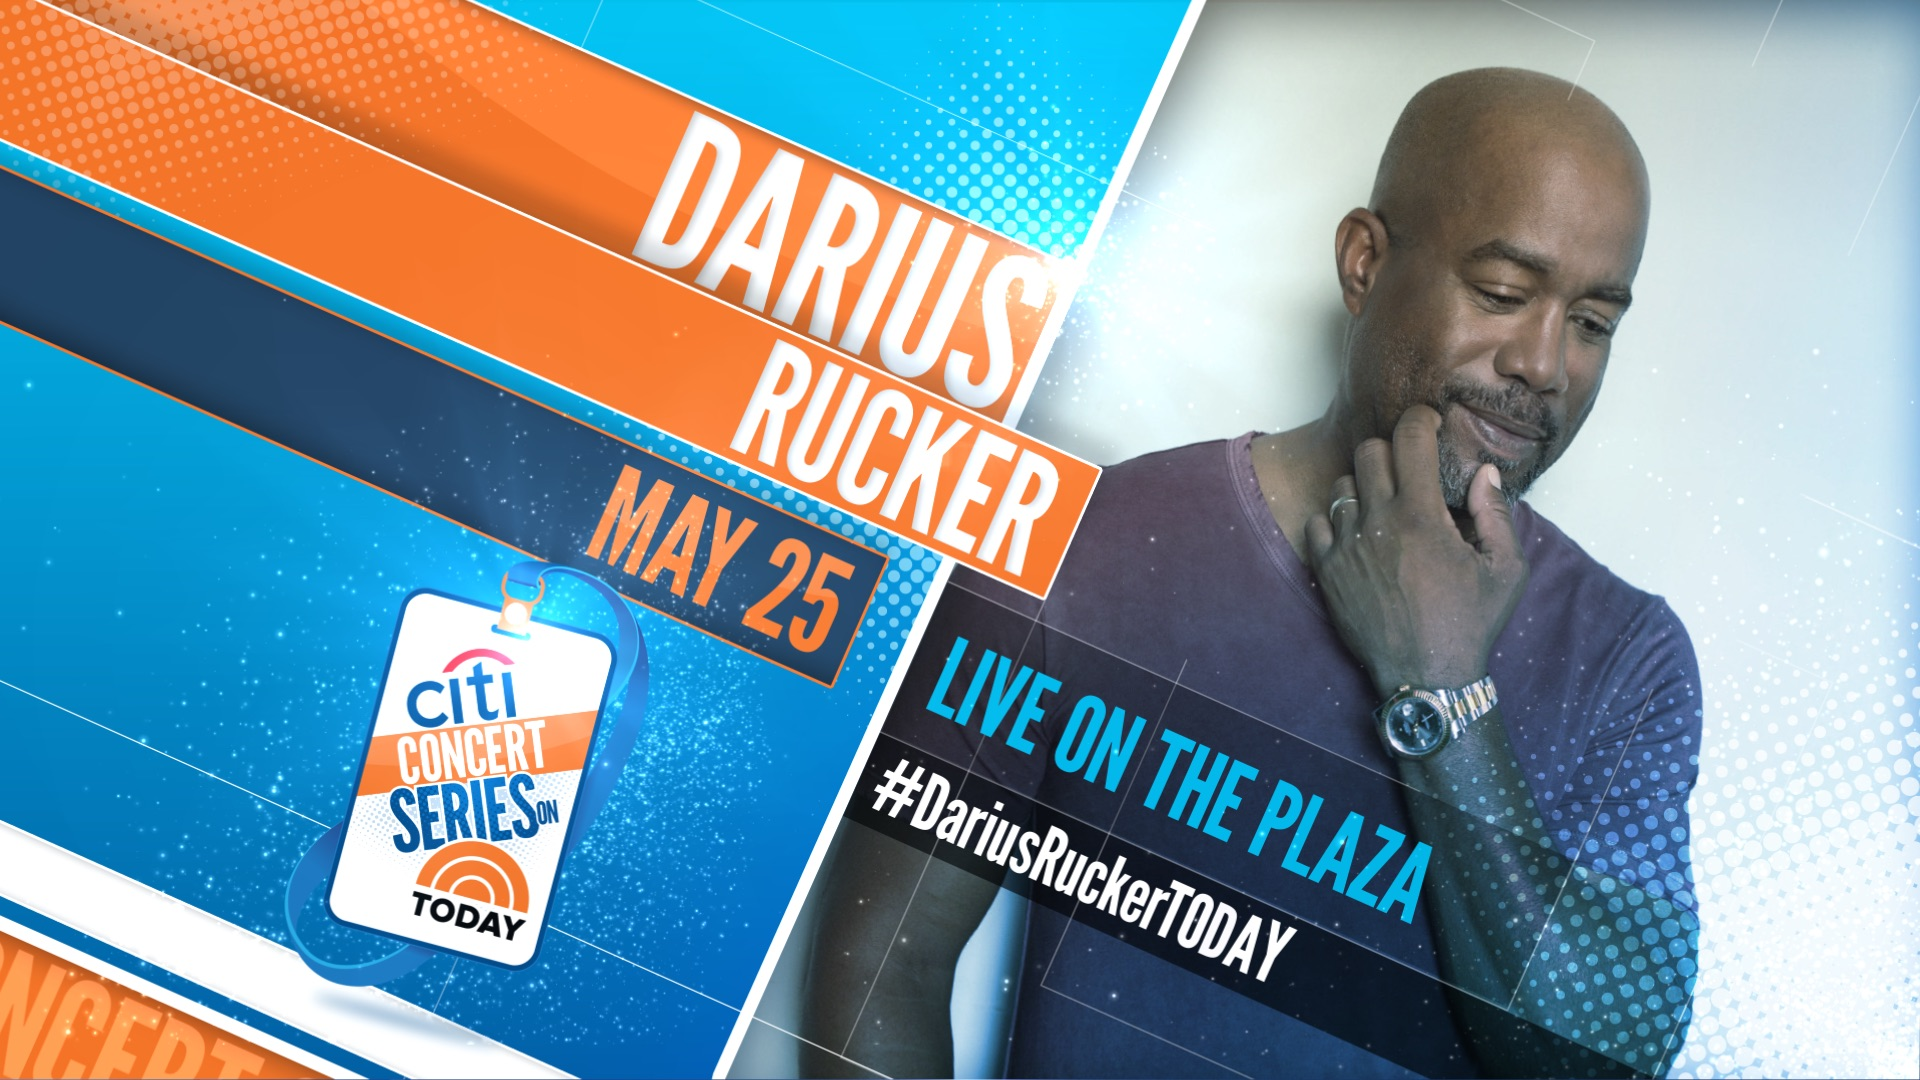 Darius to Play The TODAY Show for the CITI Concert Series